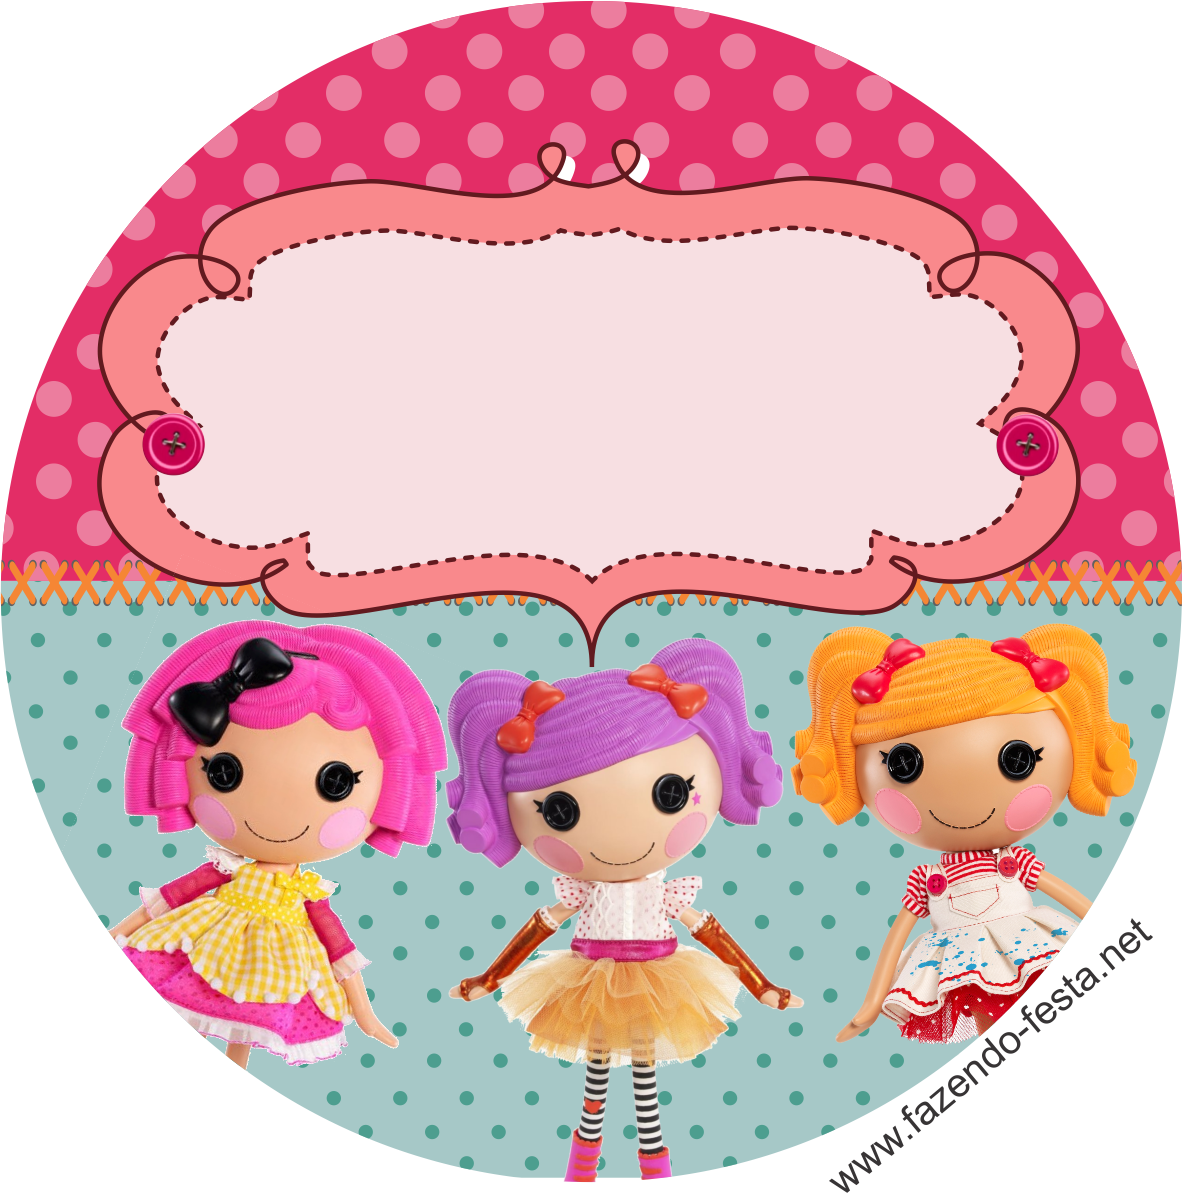 Pin by Lynn on Party (Lalaloopsy) | Pinterest | Lalaloopsy